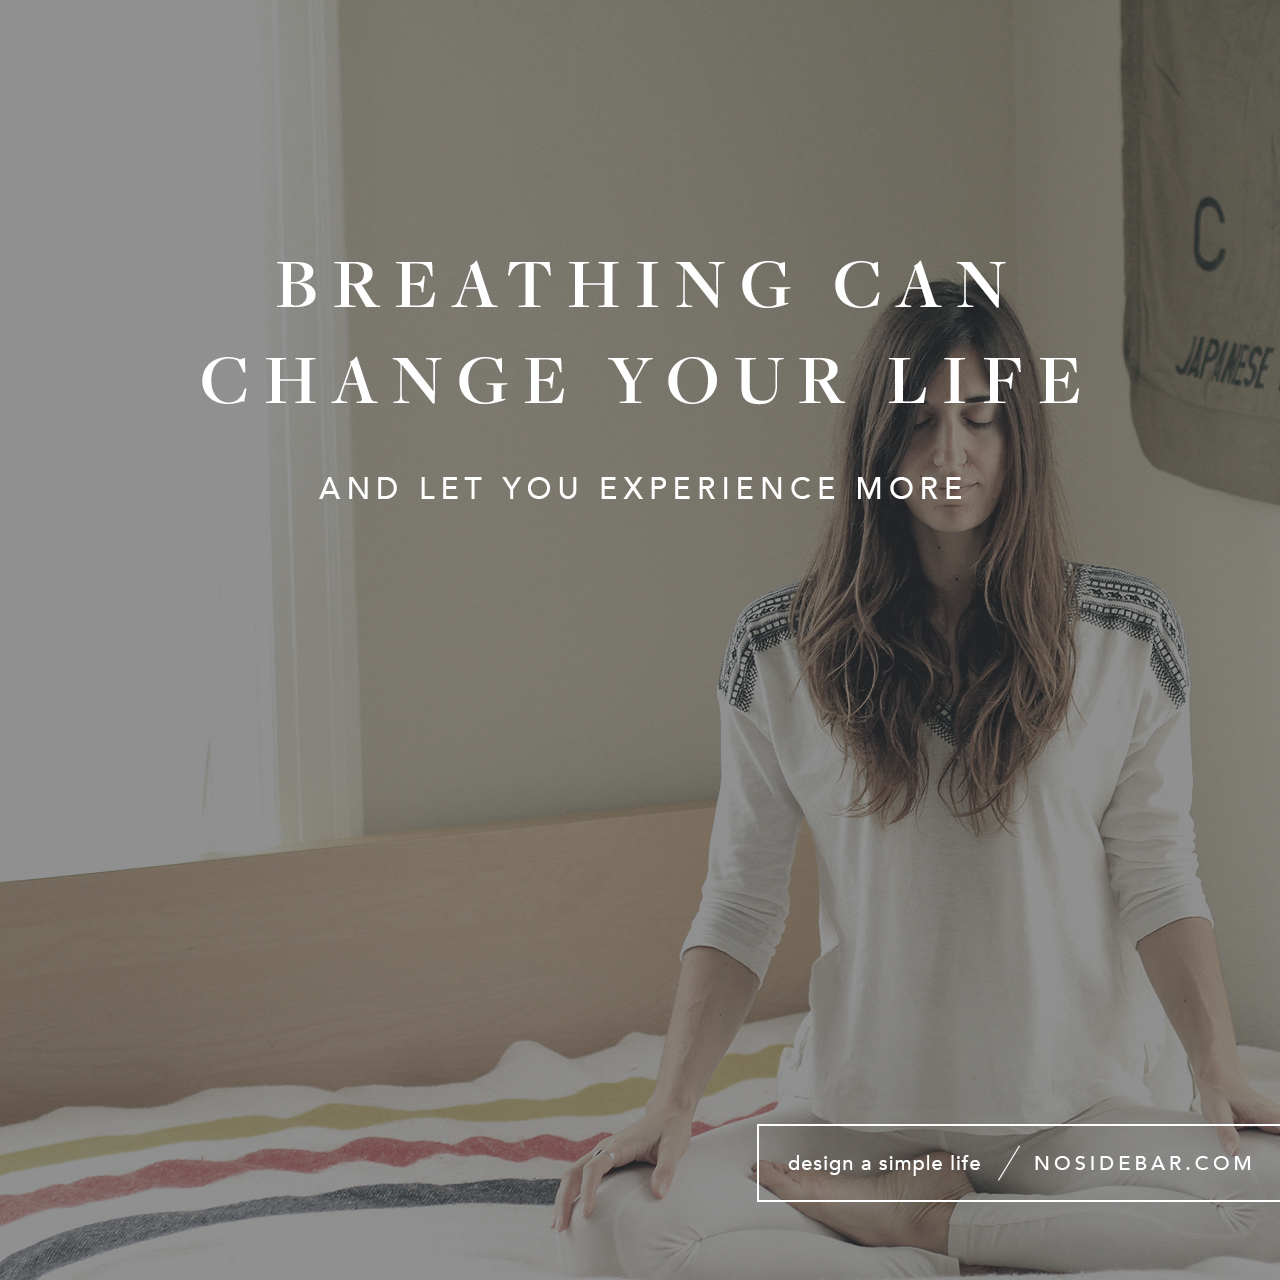 Learn to breathe deeply